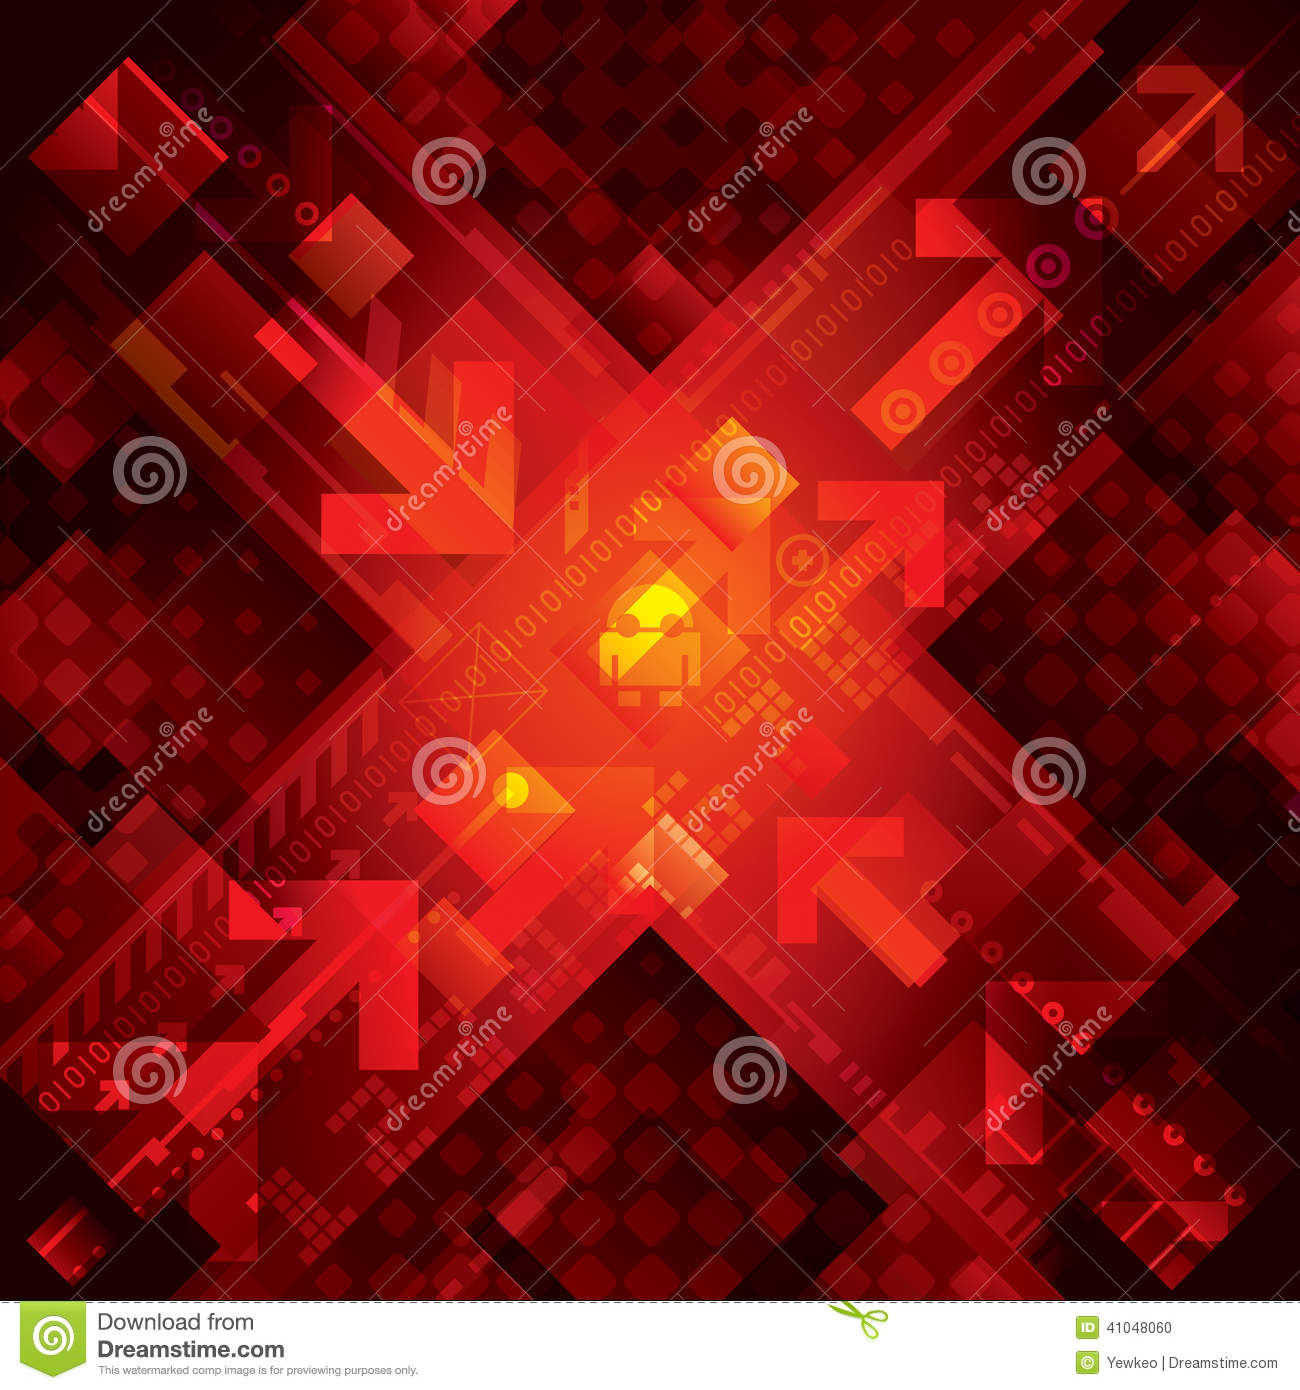 Red Technology Background Stock Vector - Image: 41048060